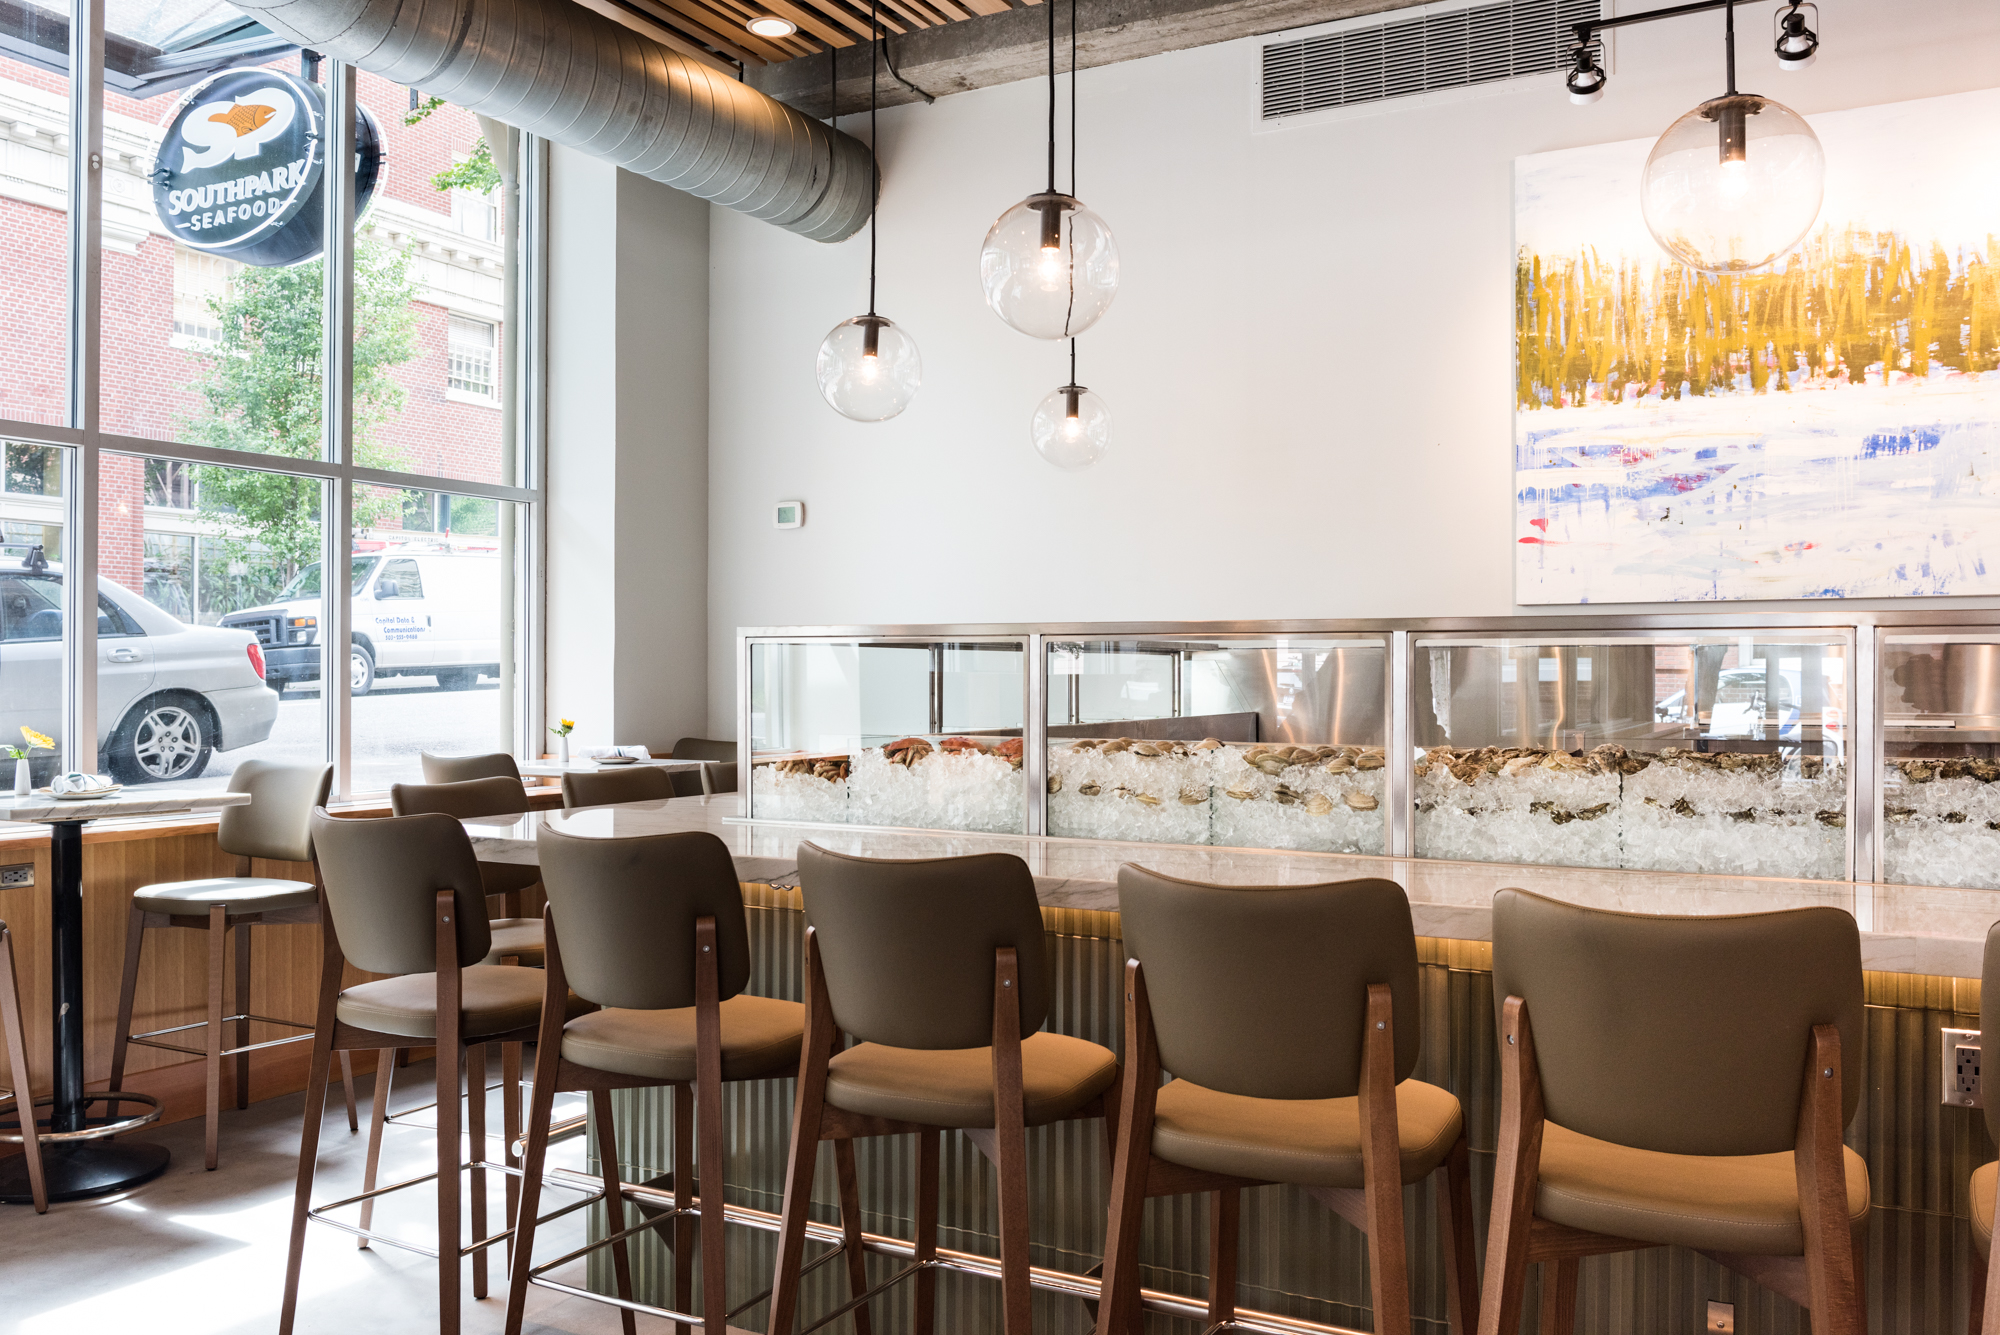 The new oyster raw bar at Southpark Seafood